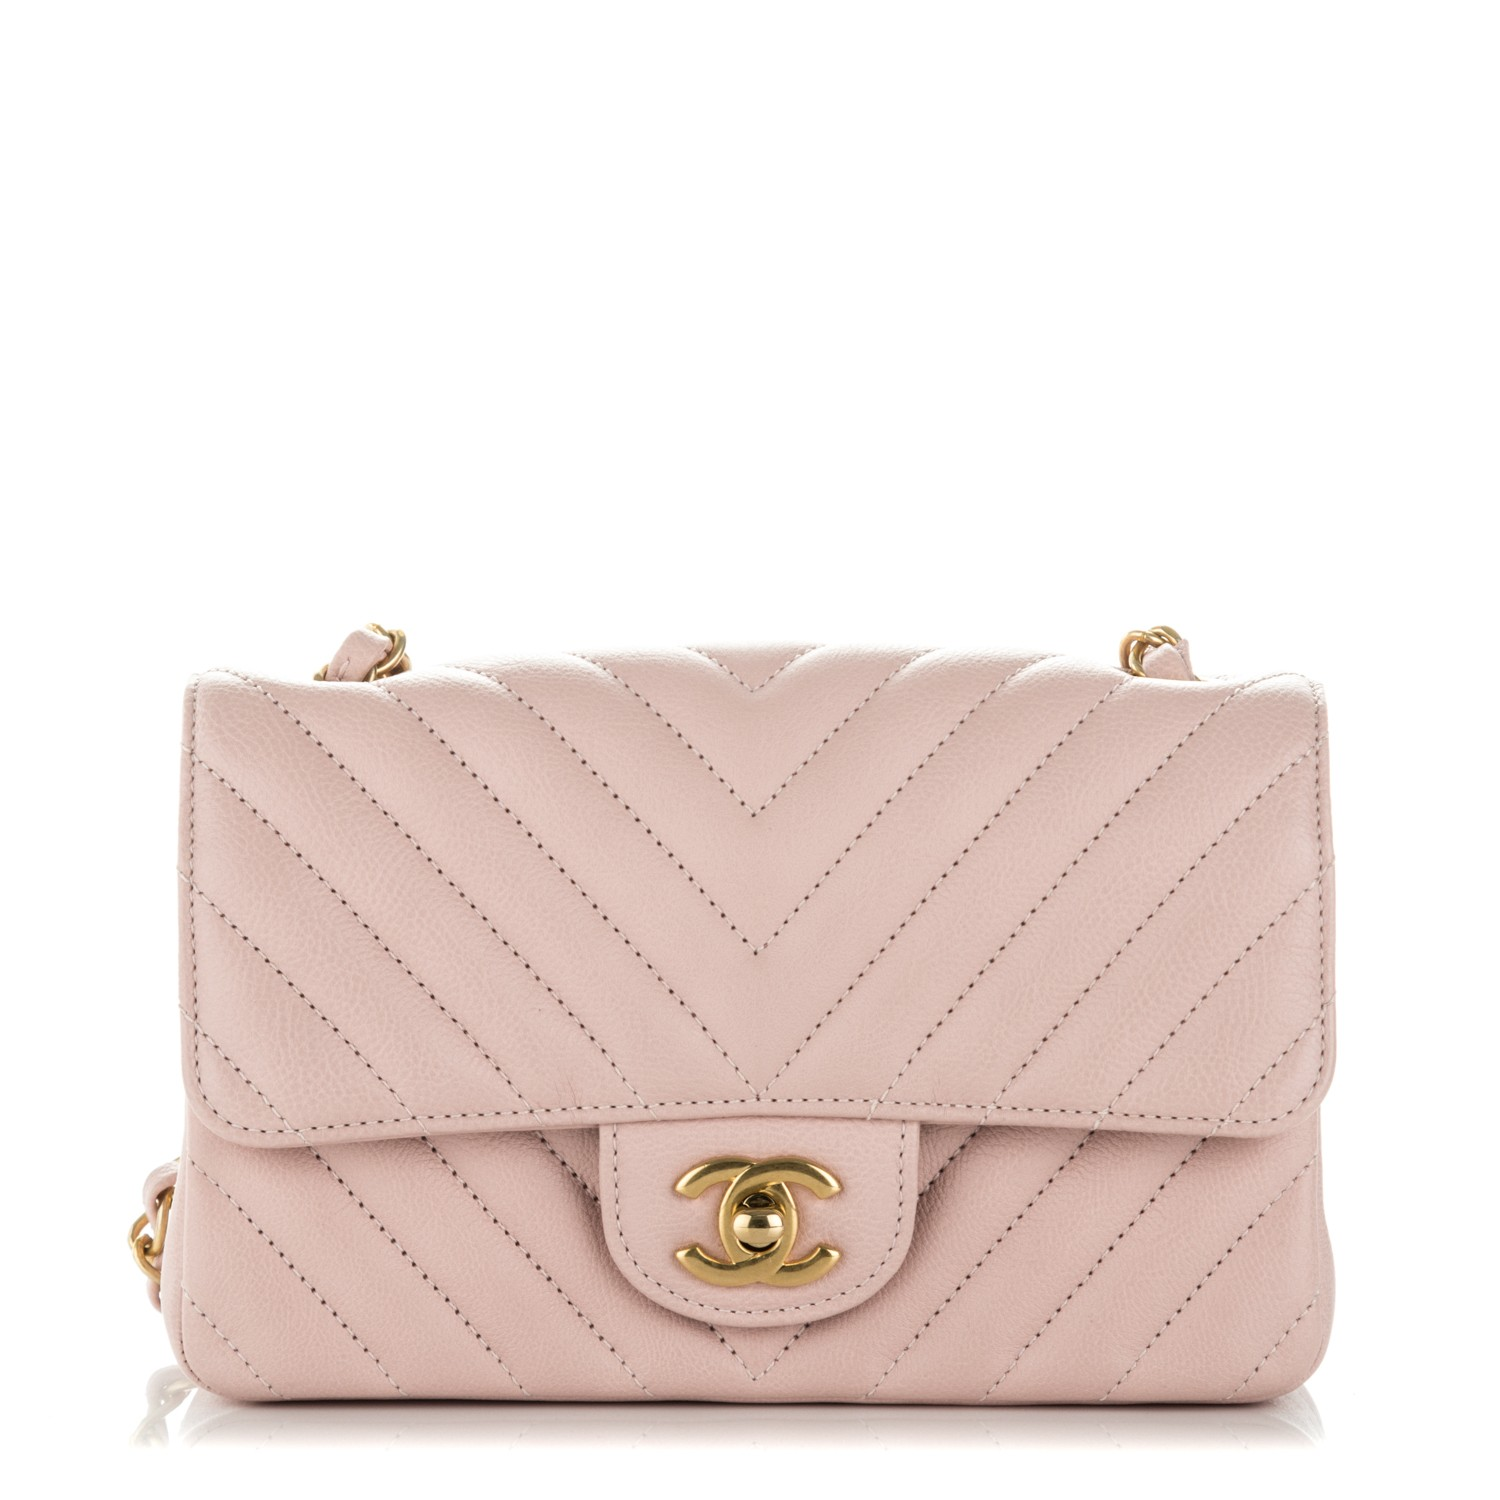 8844ce7f77c2 CHANEL Caviar Chevron Quilted Mini Rectangular Flap Light Pink 179866